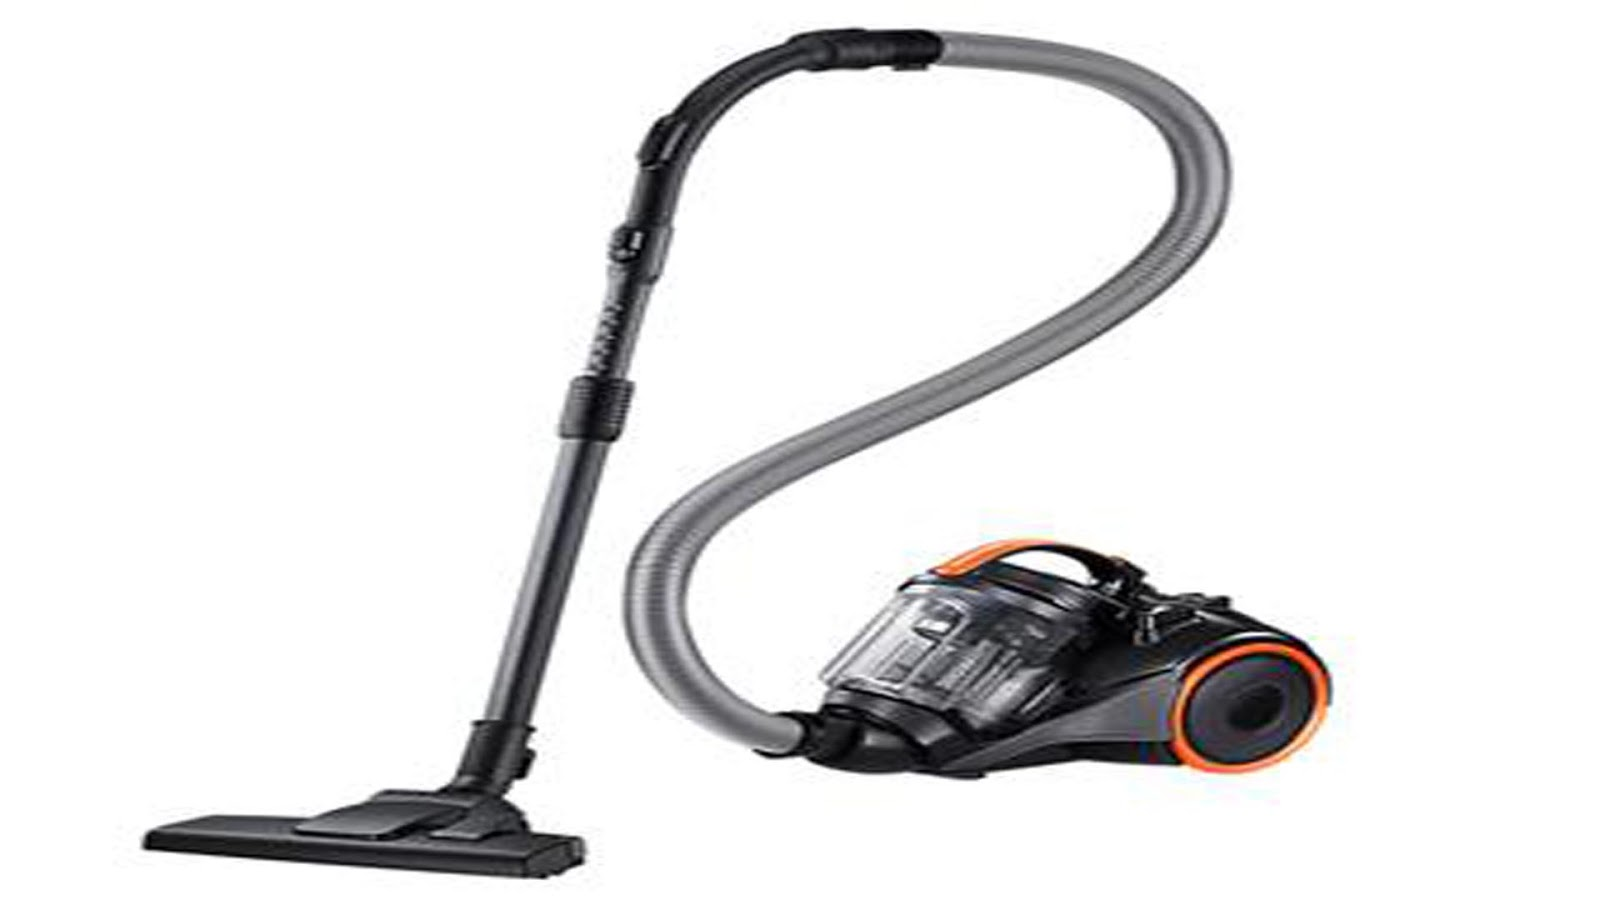 Household appliances: Notes on using a vacuum cleaner